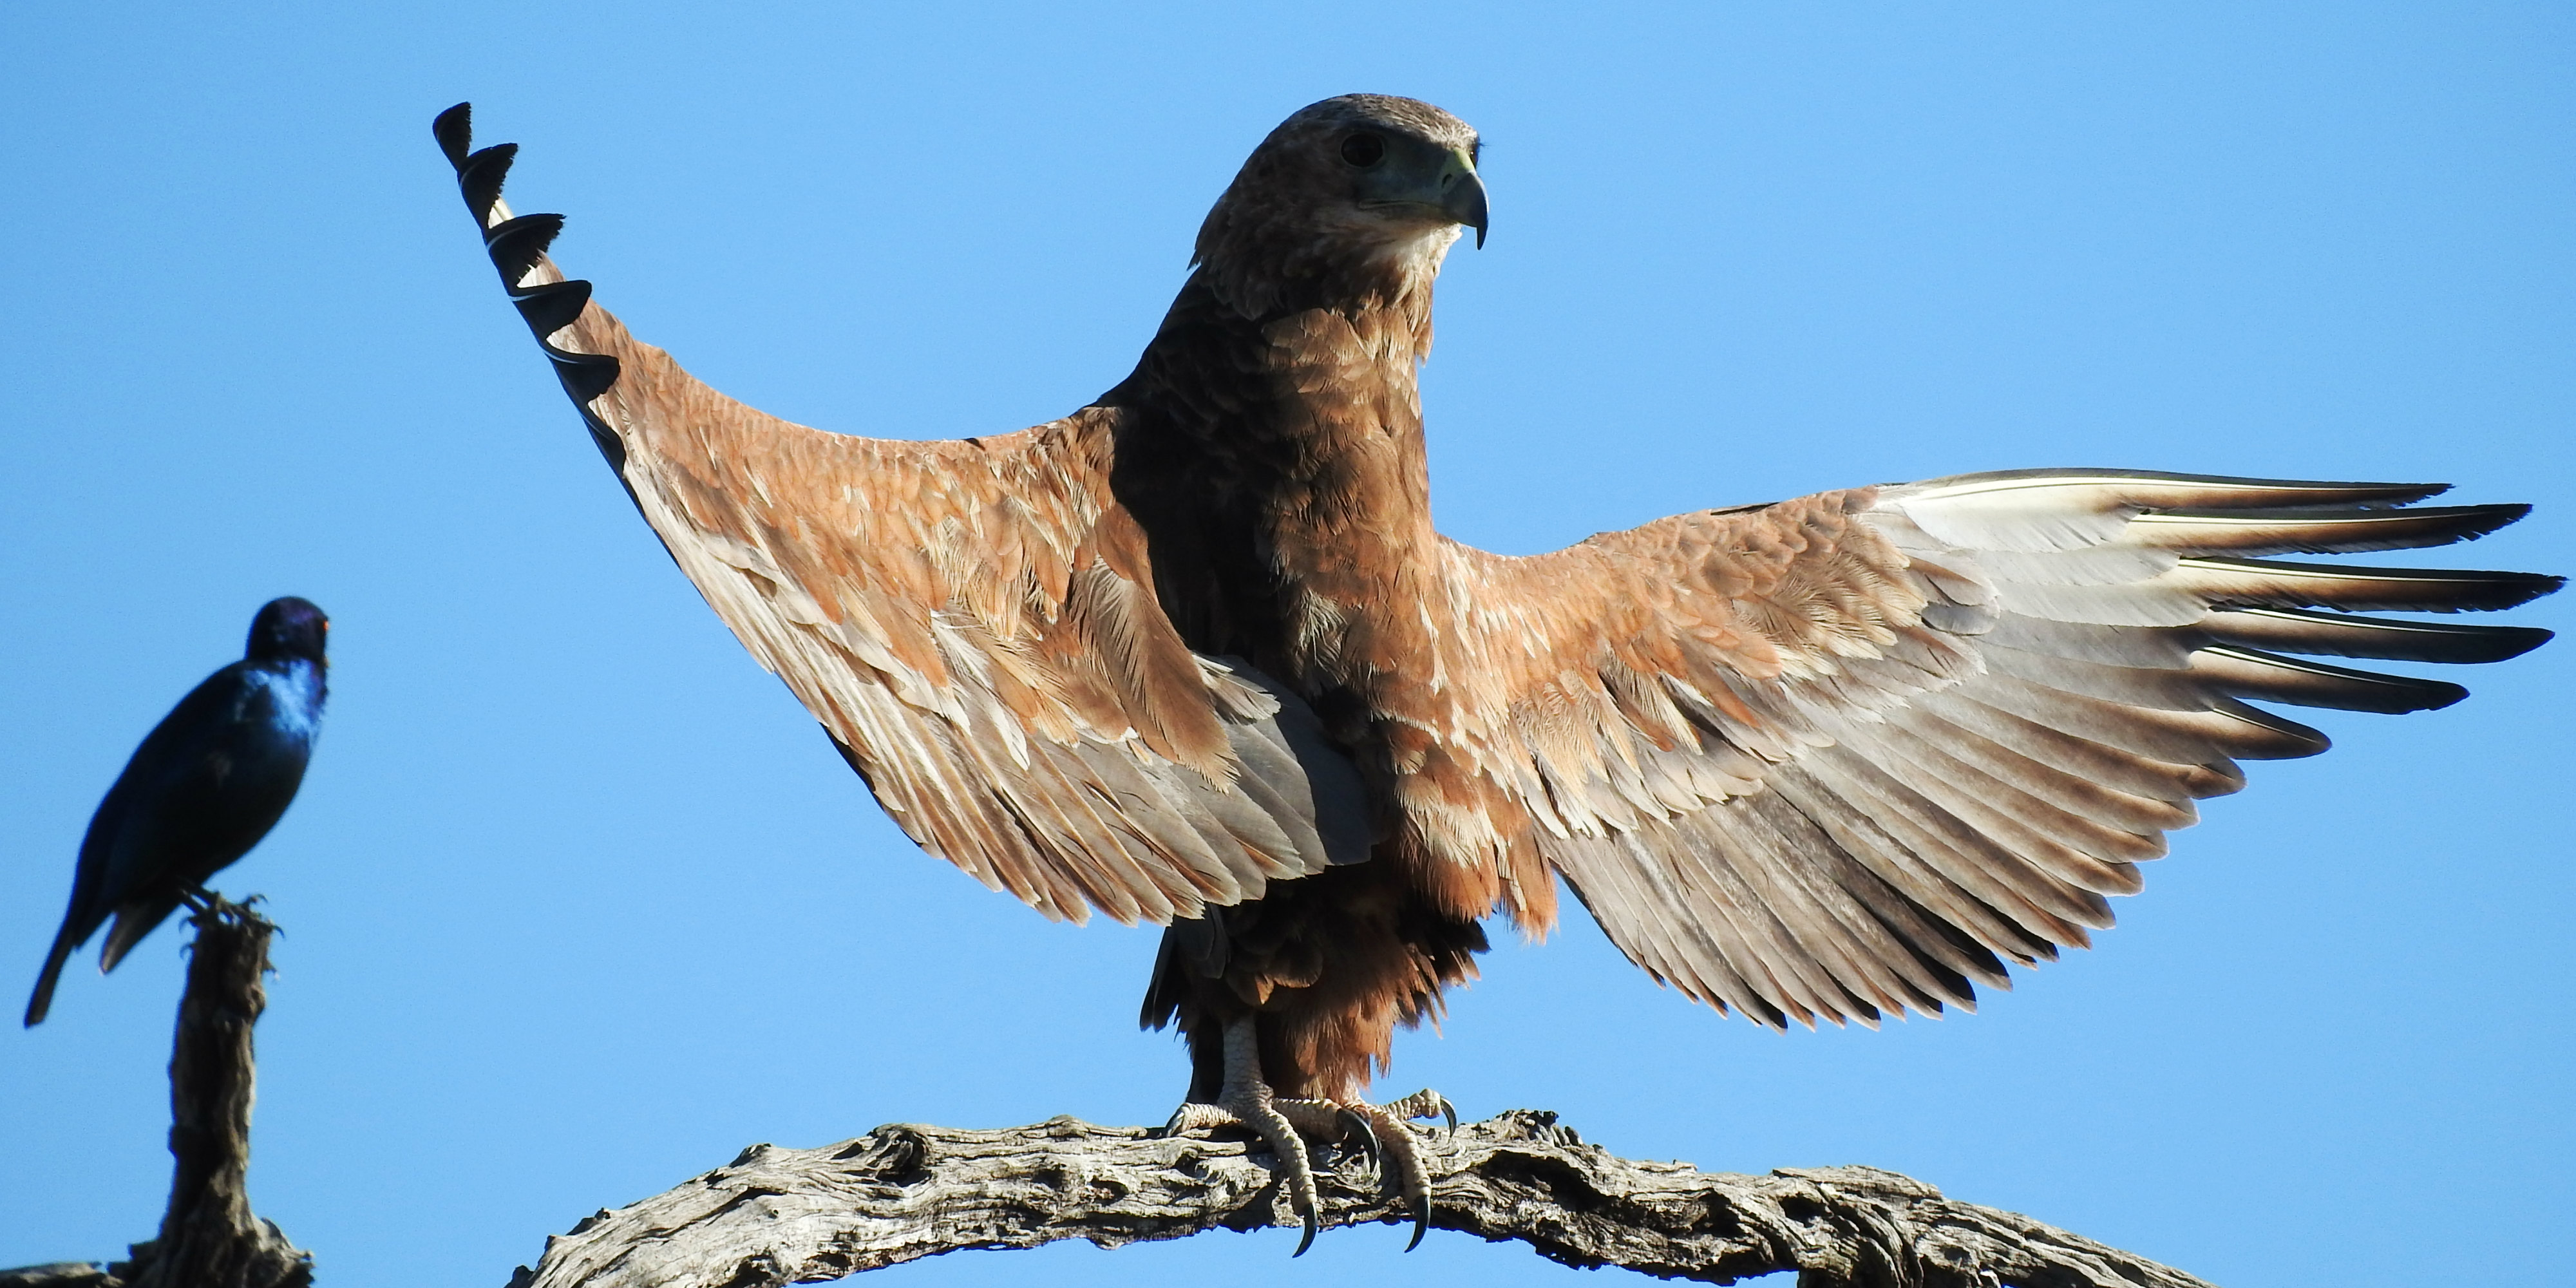 An Africa animal volunteer captures an image of a mighty eagle, as it spreads its wings.